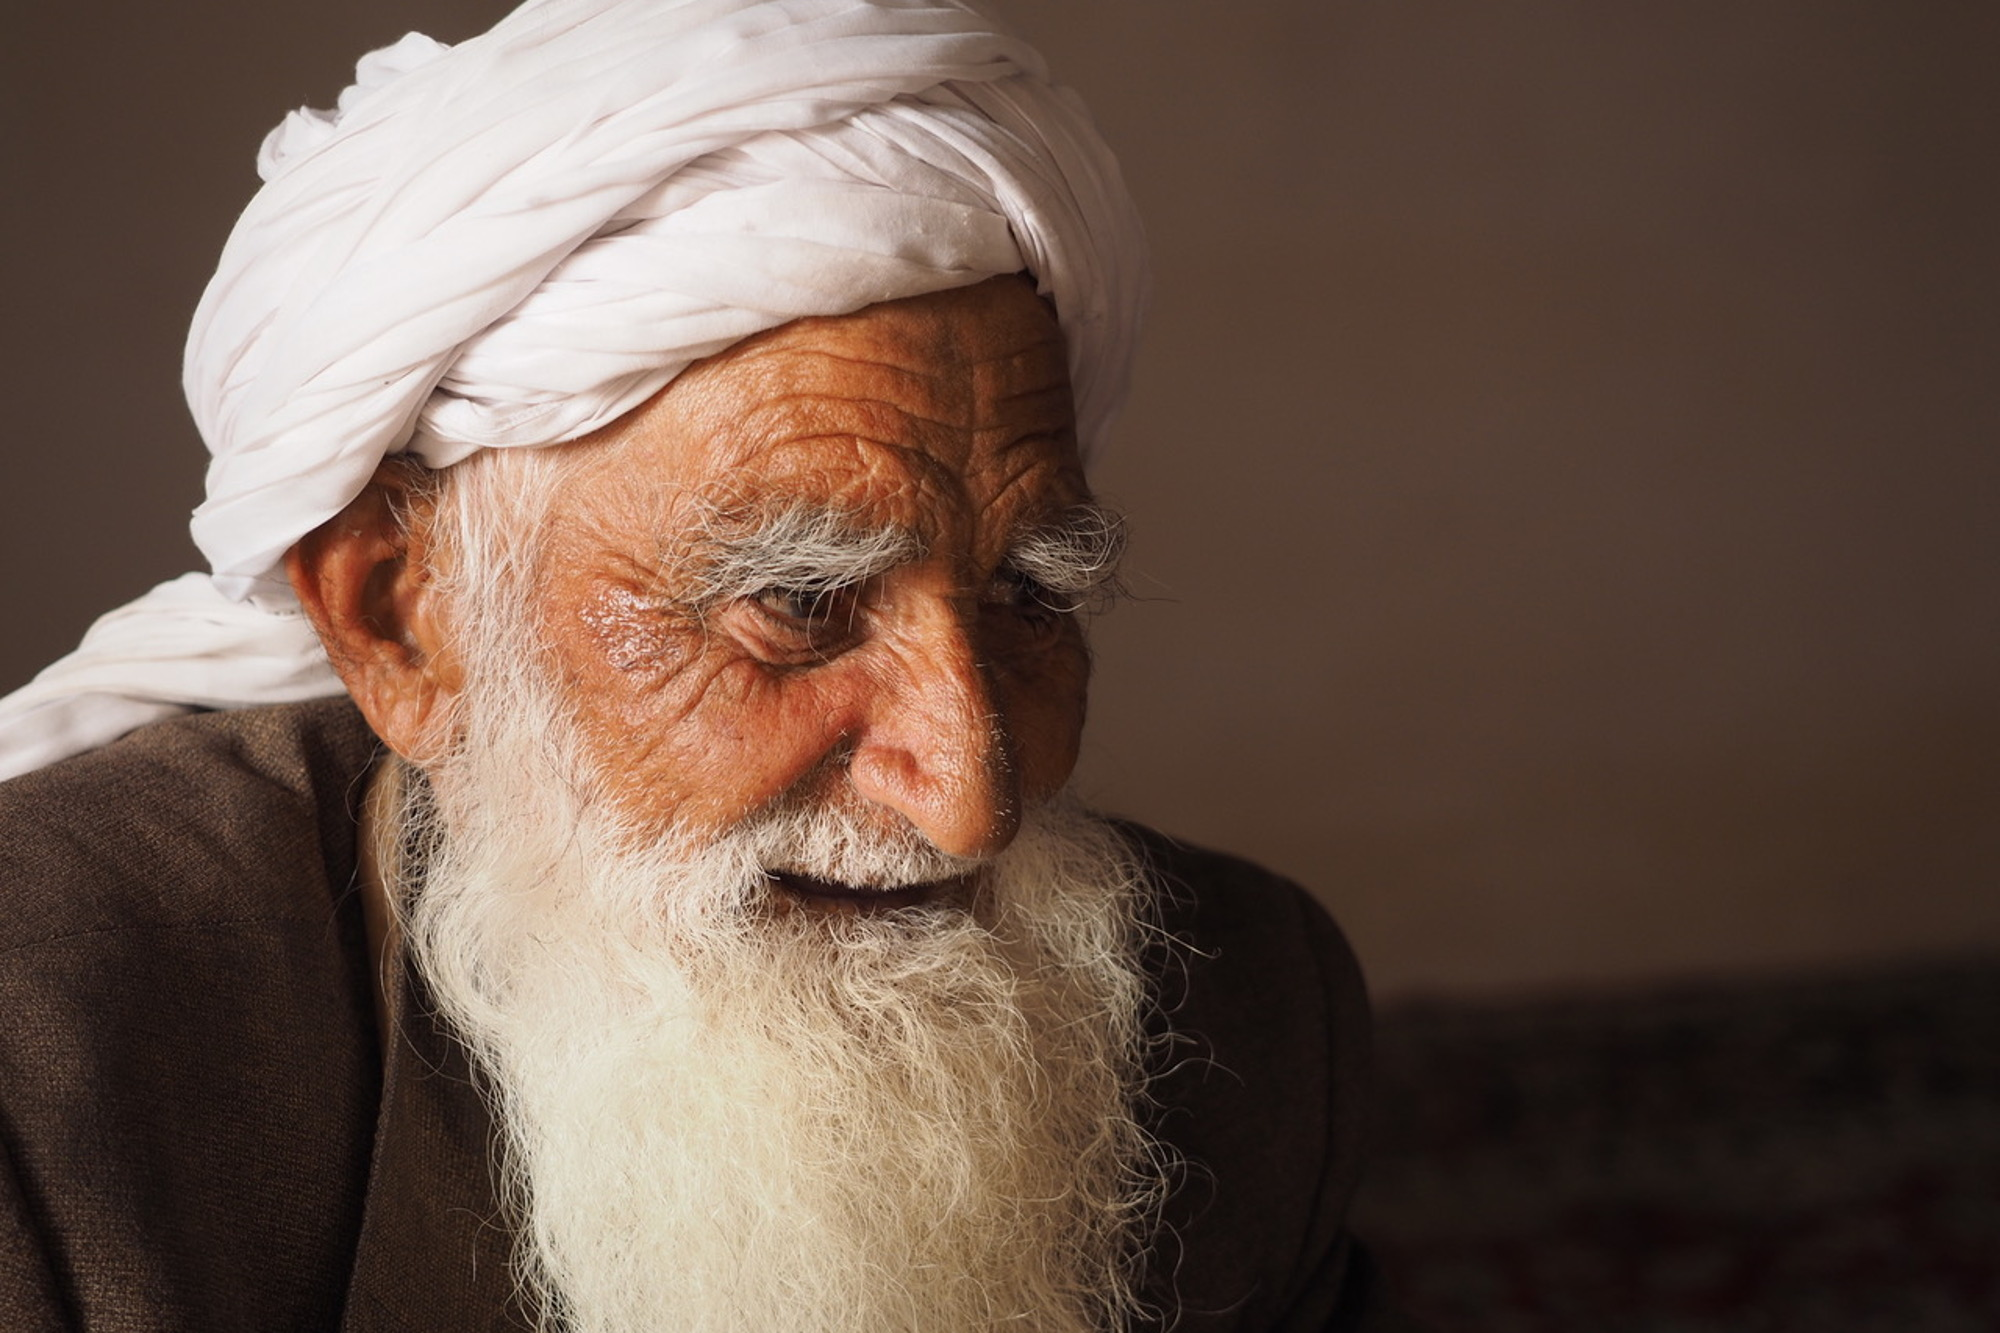 A portrait shot of a Sufi at a mosque from Rob's travels in Herat, Afghanistan © Rob Lendon